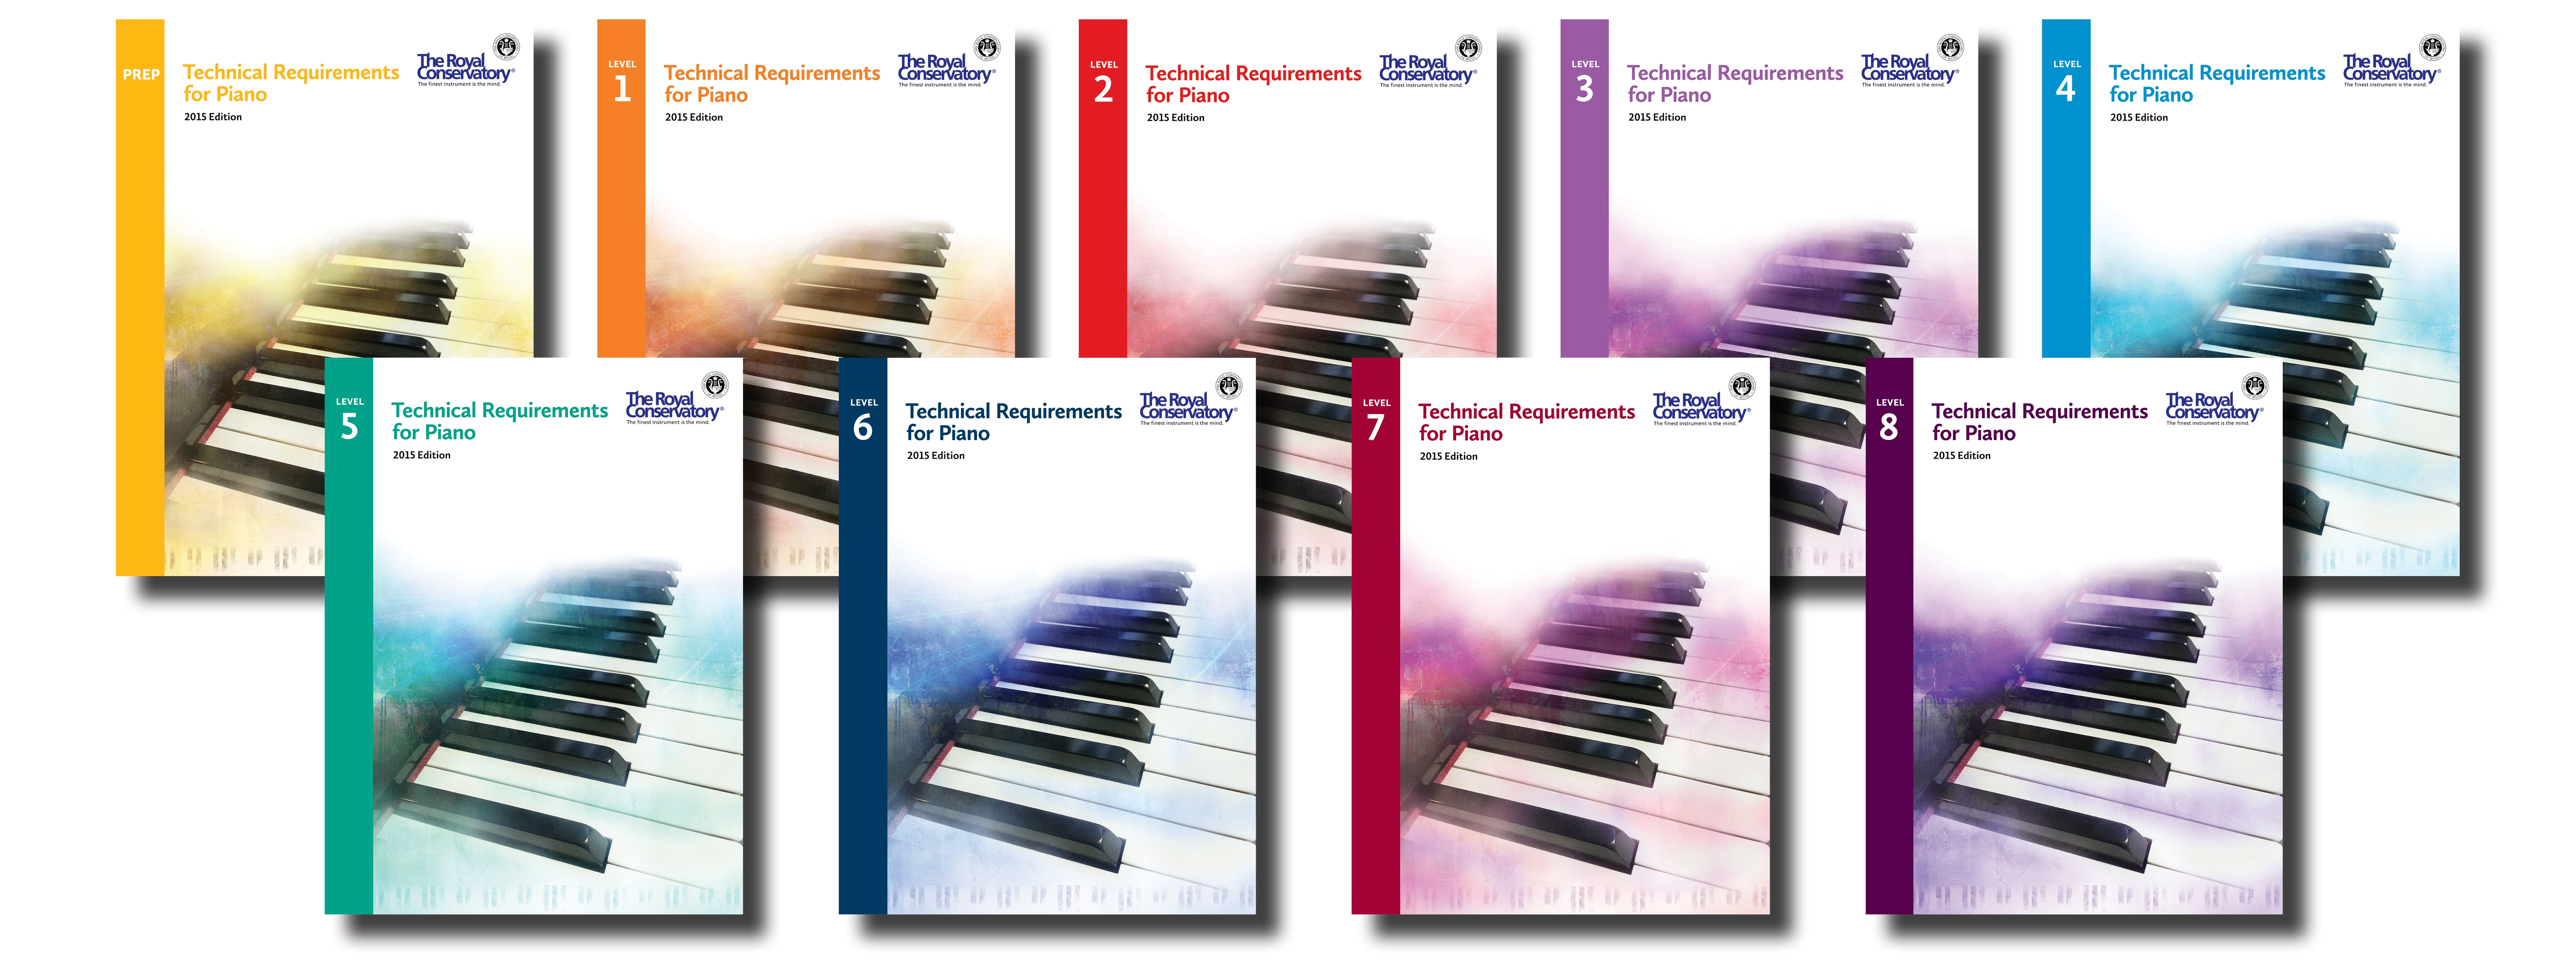 Technical Requirements for Piano